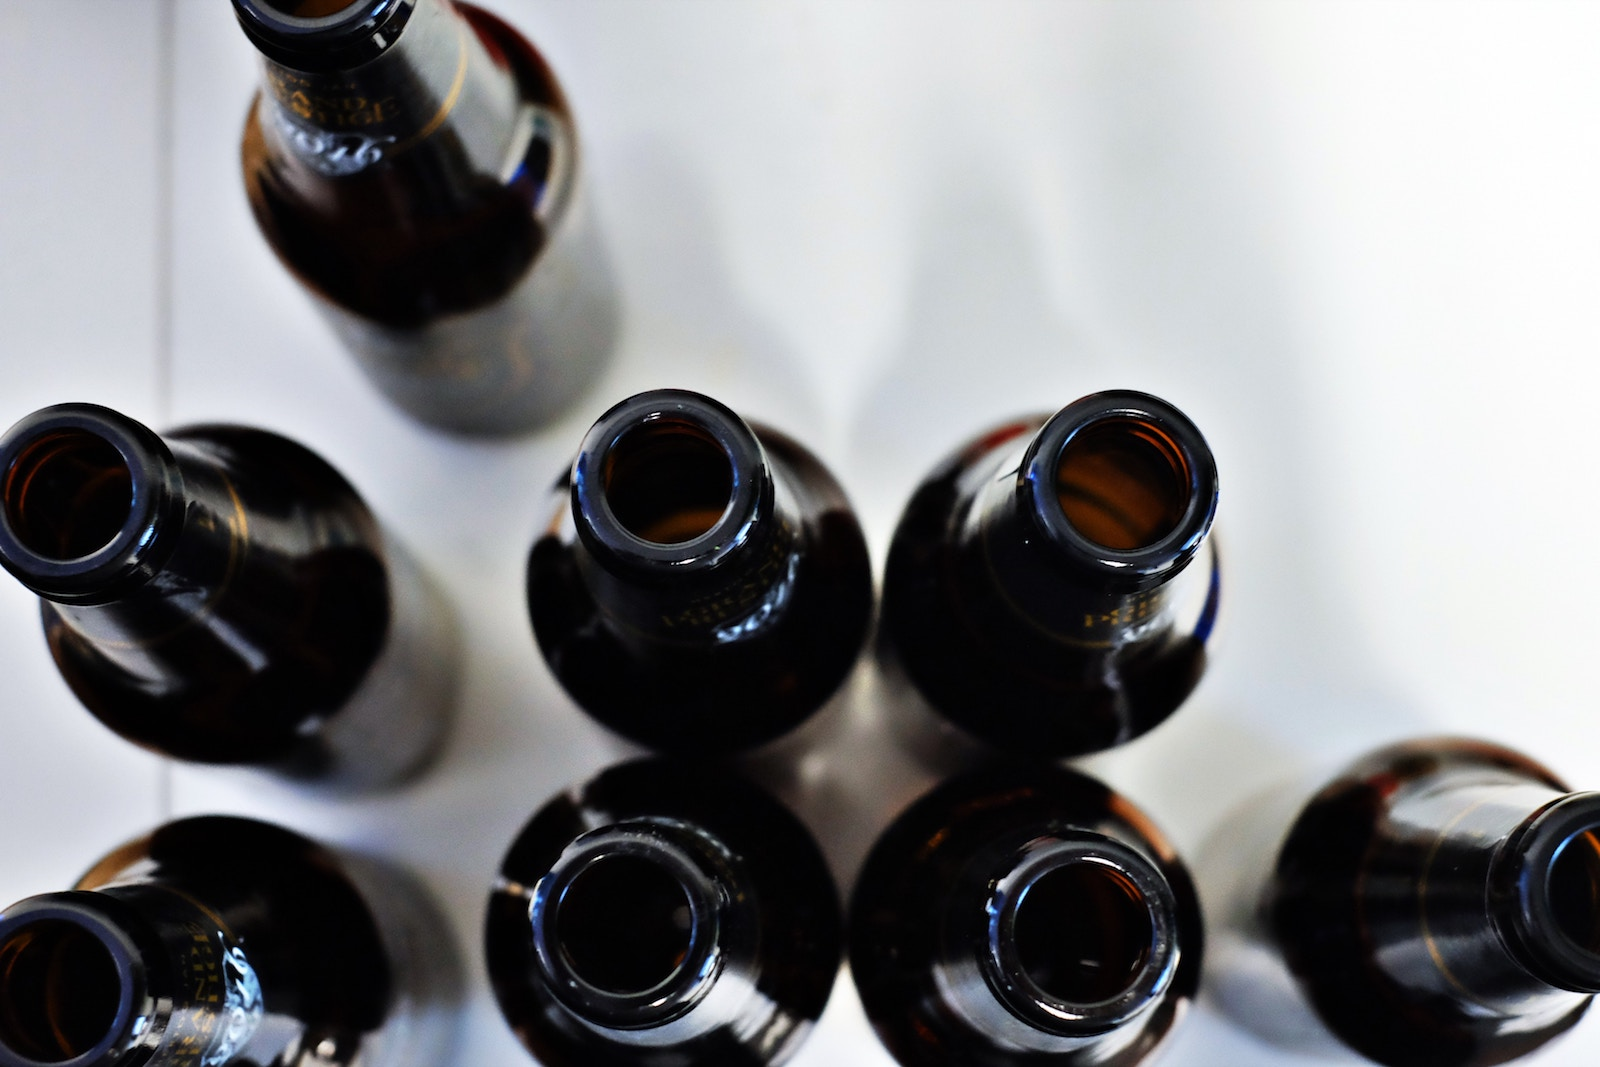 close up dark beer bottles from above